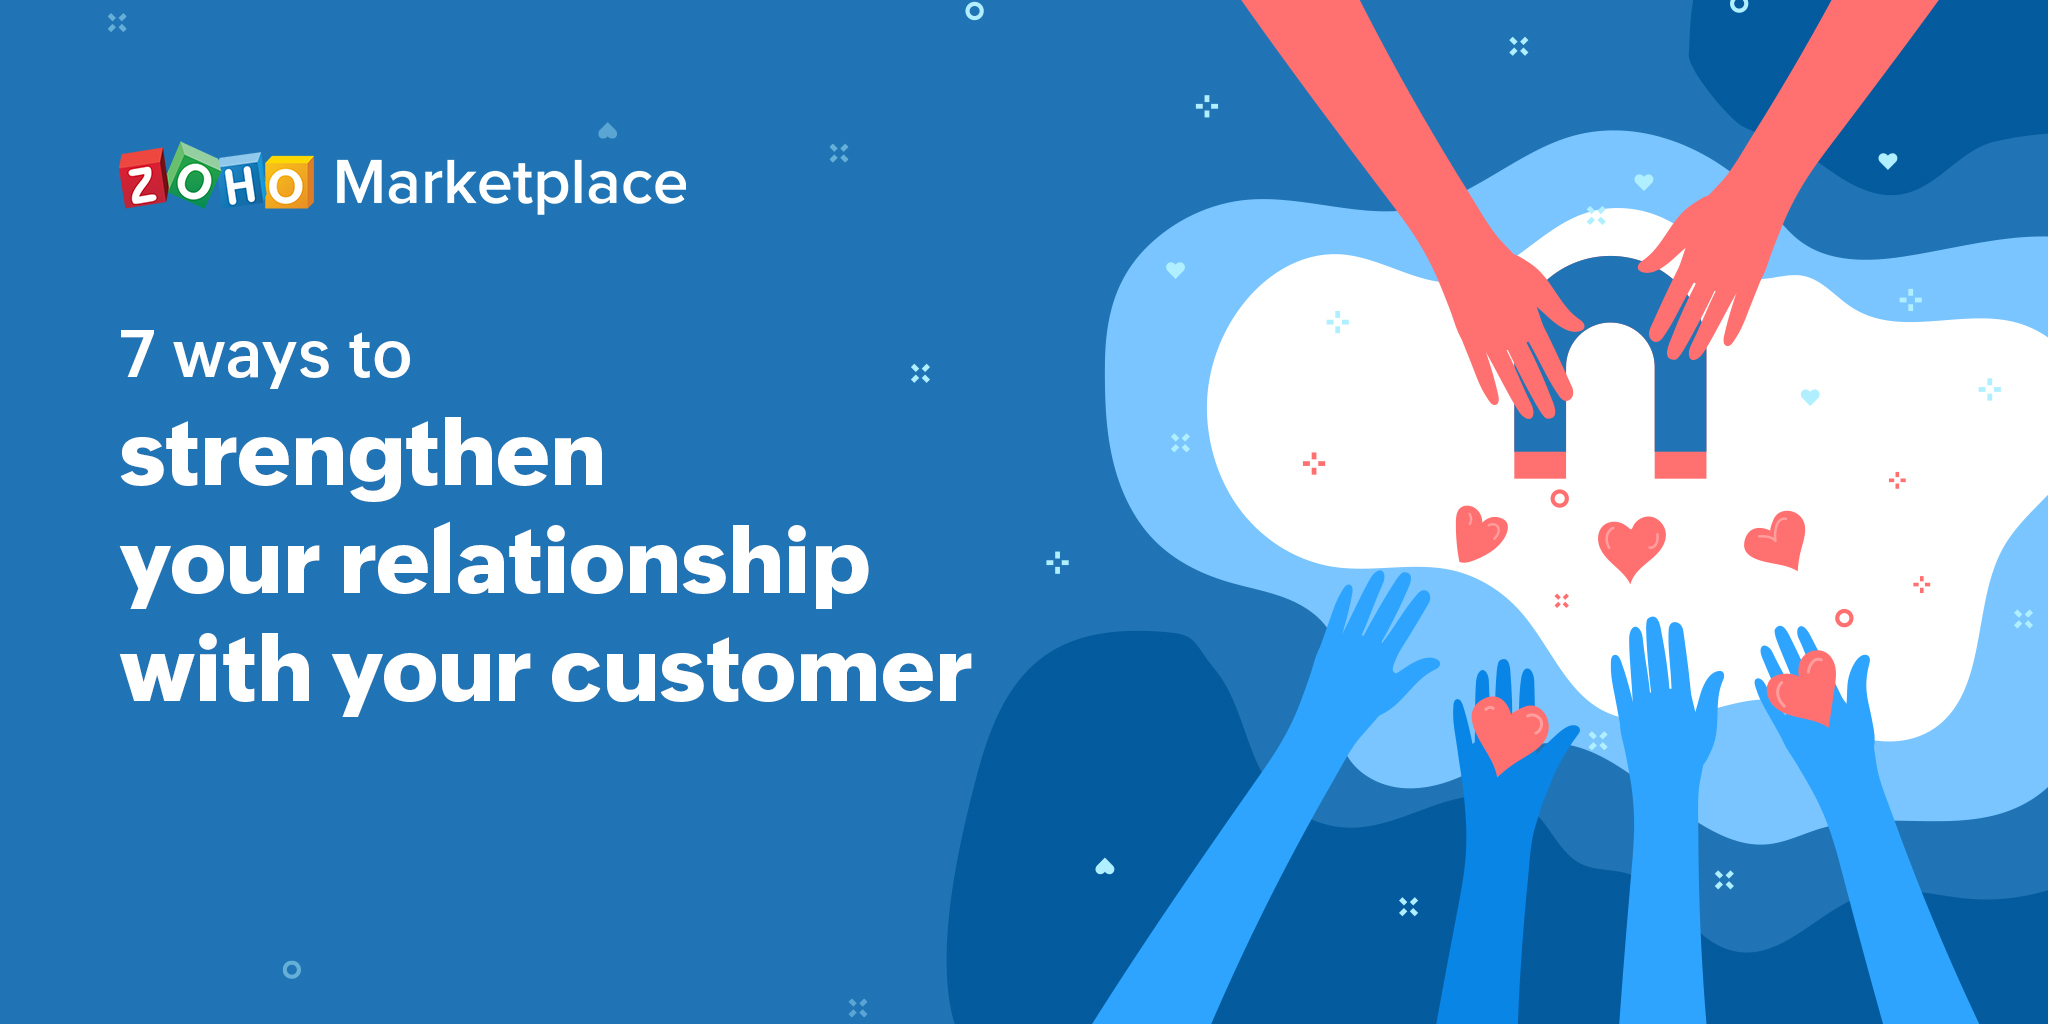 7 ways to strengthen your relationship with your customer